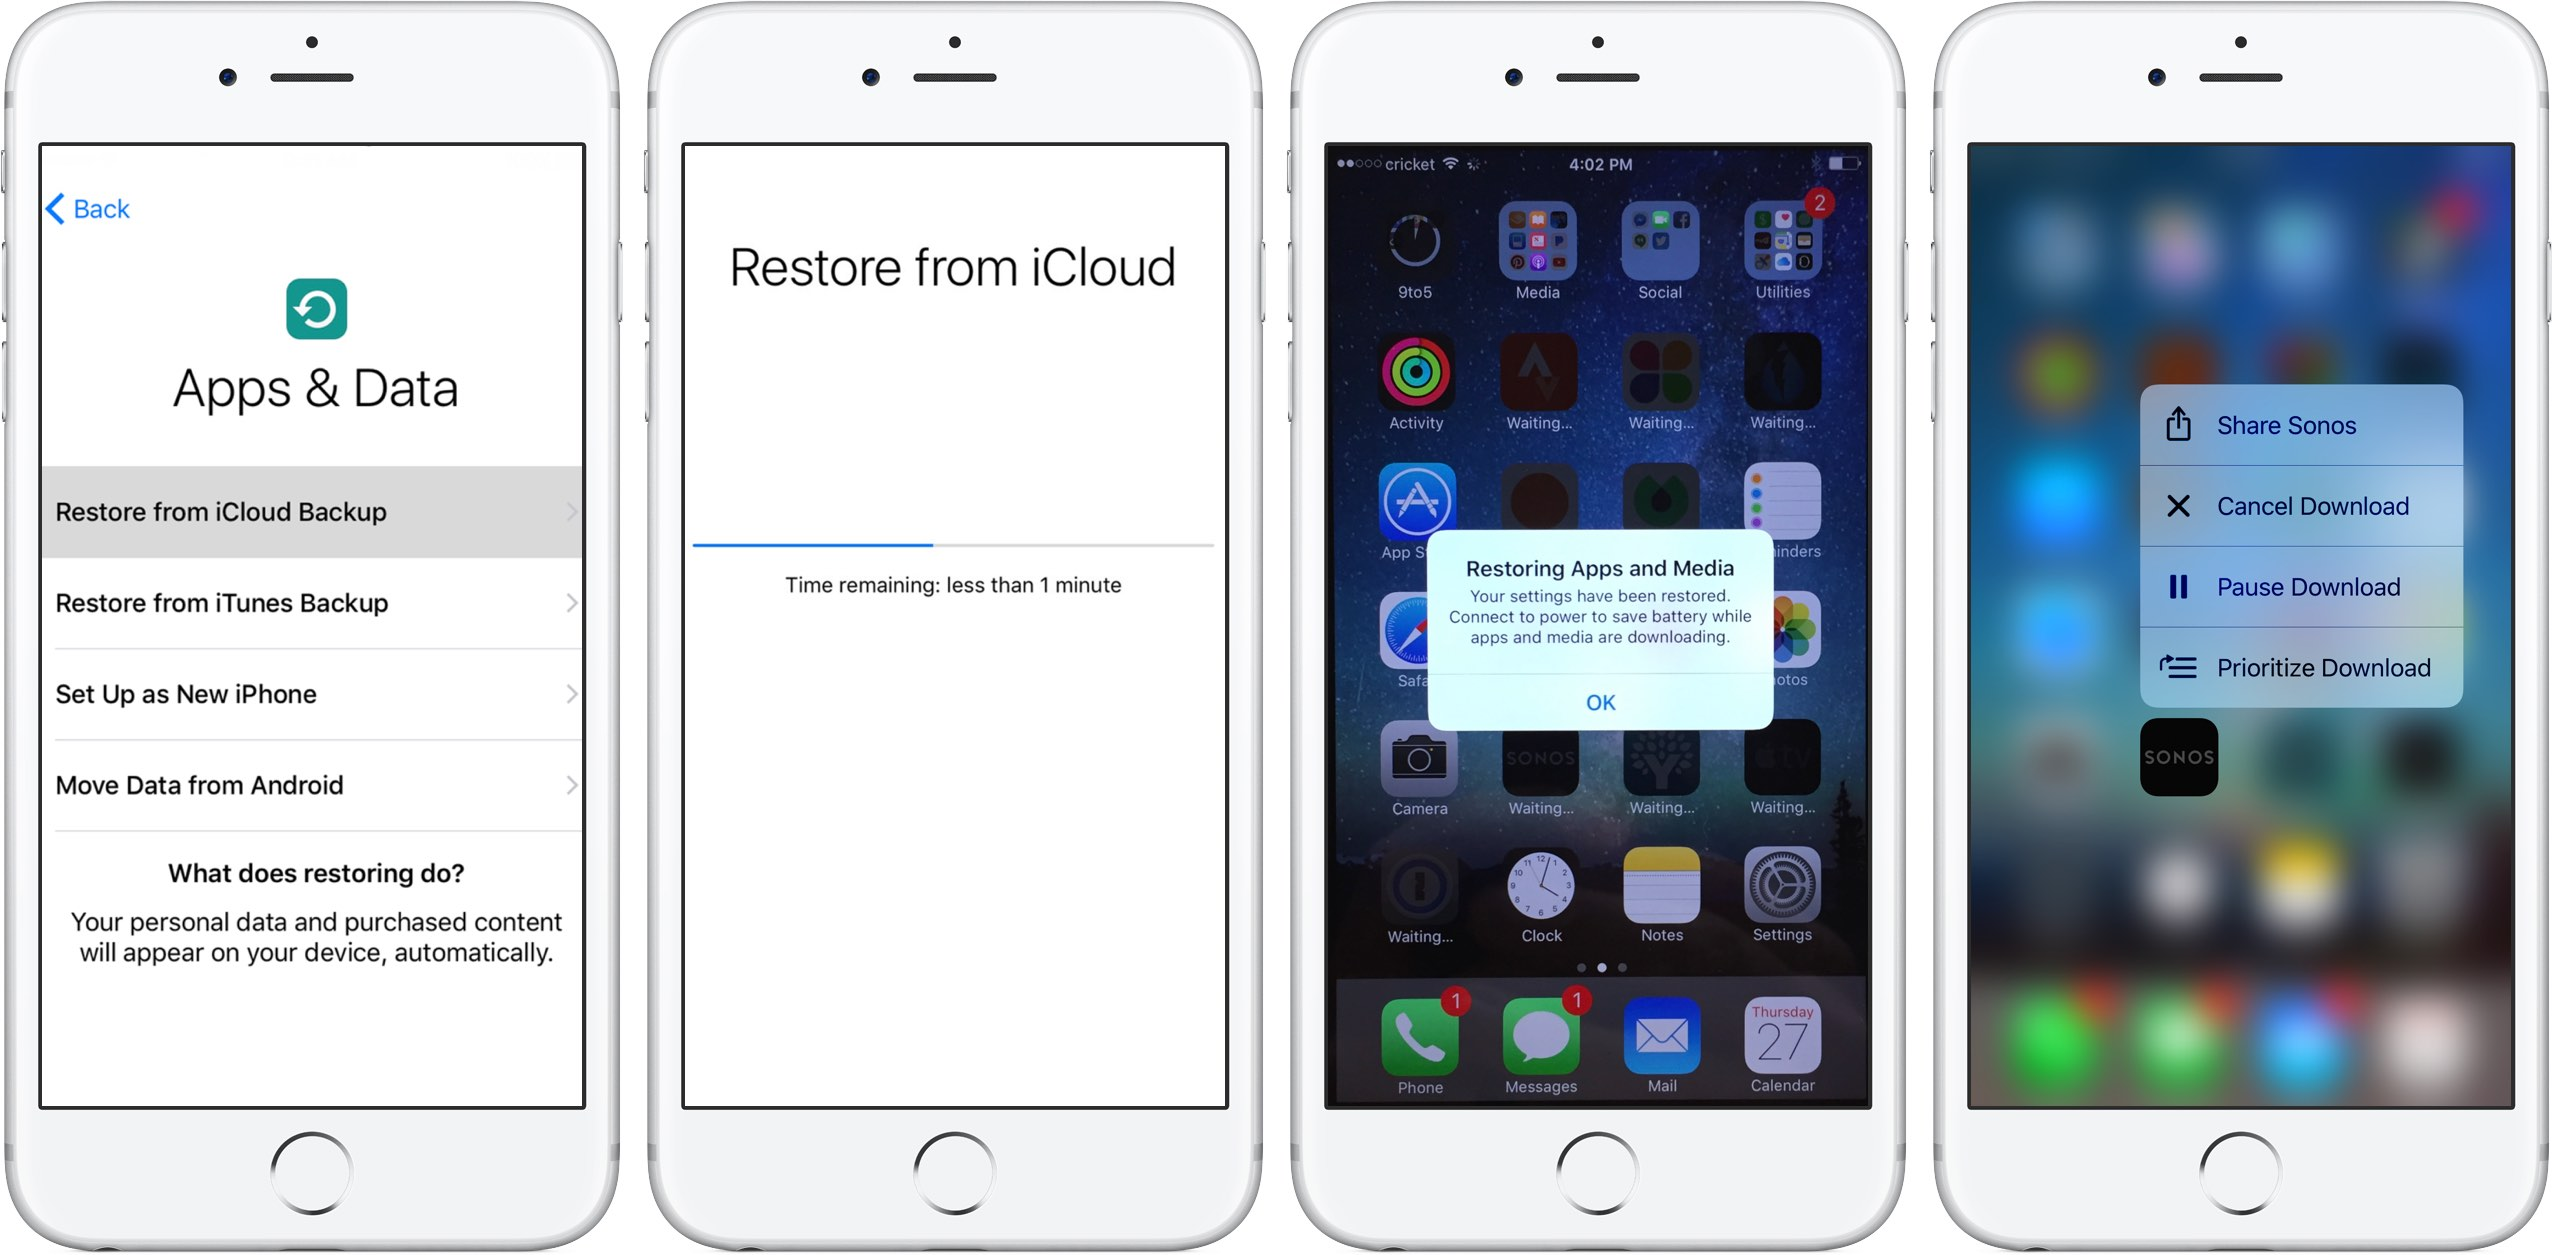 How to restore iPhone from iCloud backup - ways, recommendations and feedback